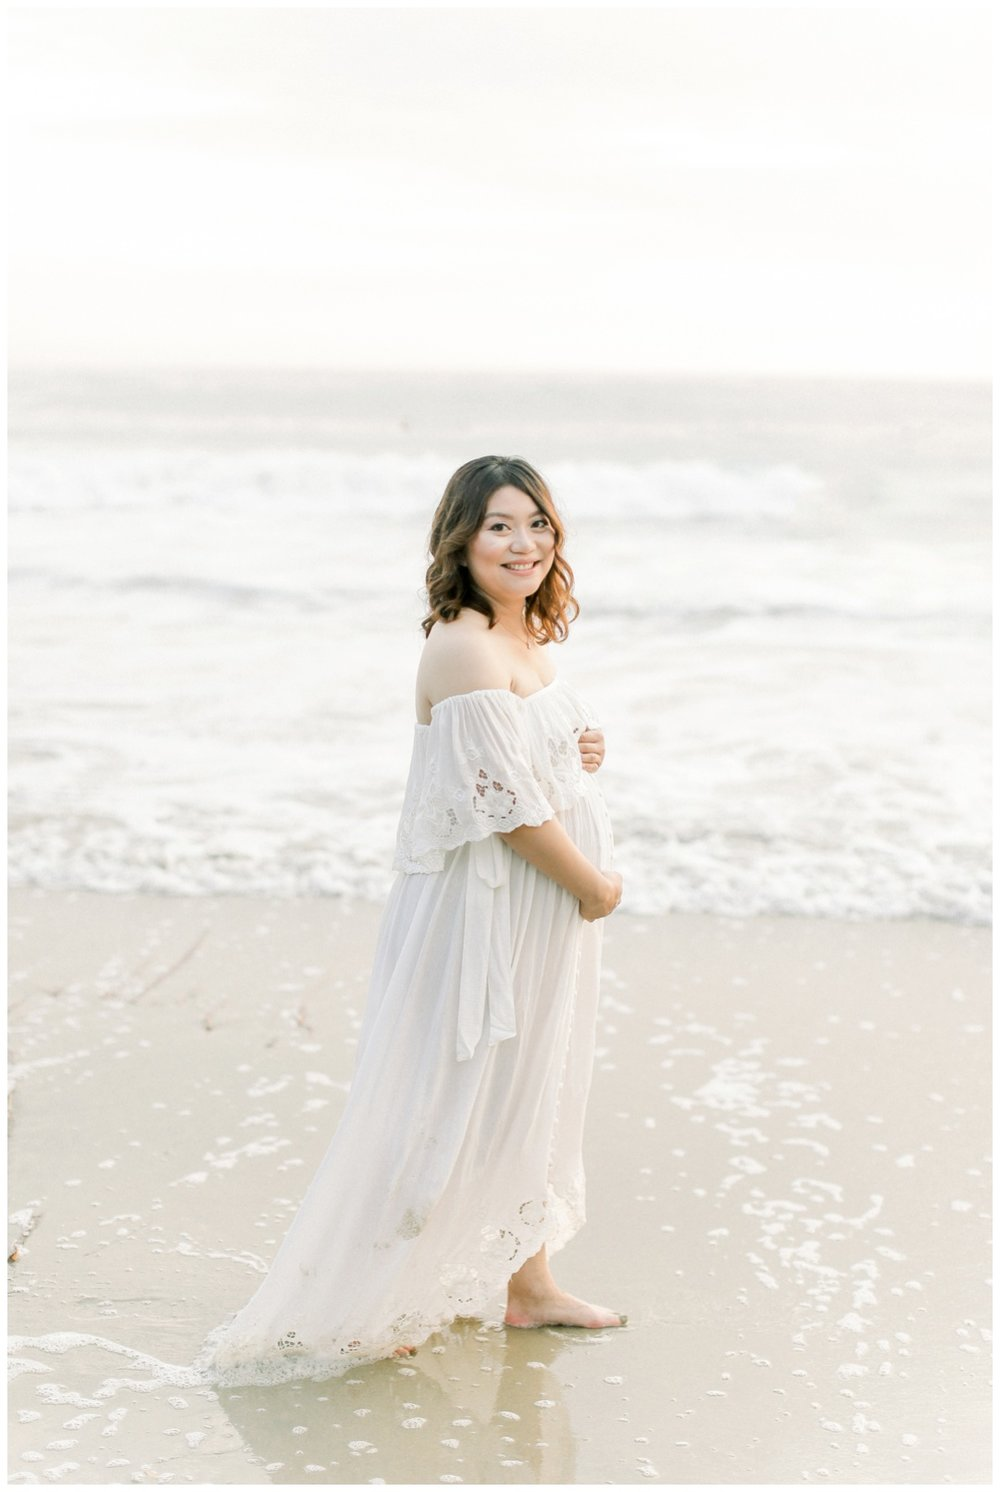 Newport_Beach_Maternity_Photographer_The_Koontz_Maternity_Session_Newport_Beach_Maternity_Photography_Orange_County_Photography_Cori_Kleckner_Photography_Orange_County_Beach_Photography_The_Ritz_Carlton_Laguna_Niguel_Resort_ Maternity_Session__1738.jpg